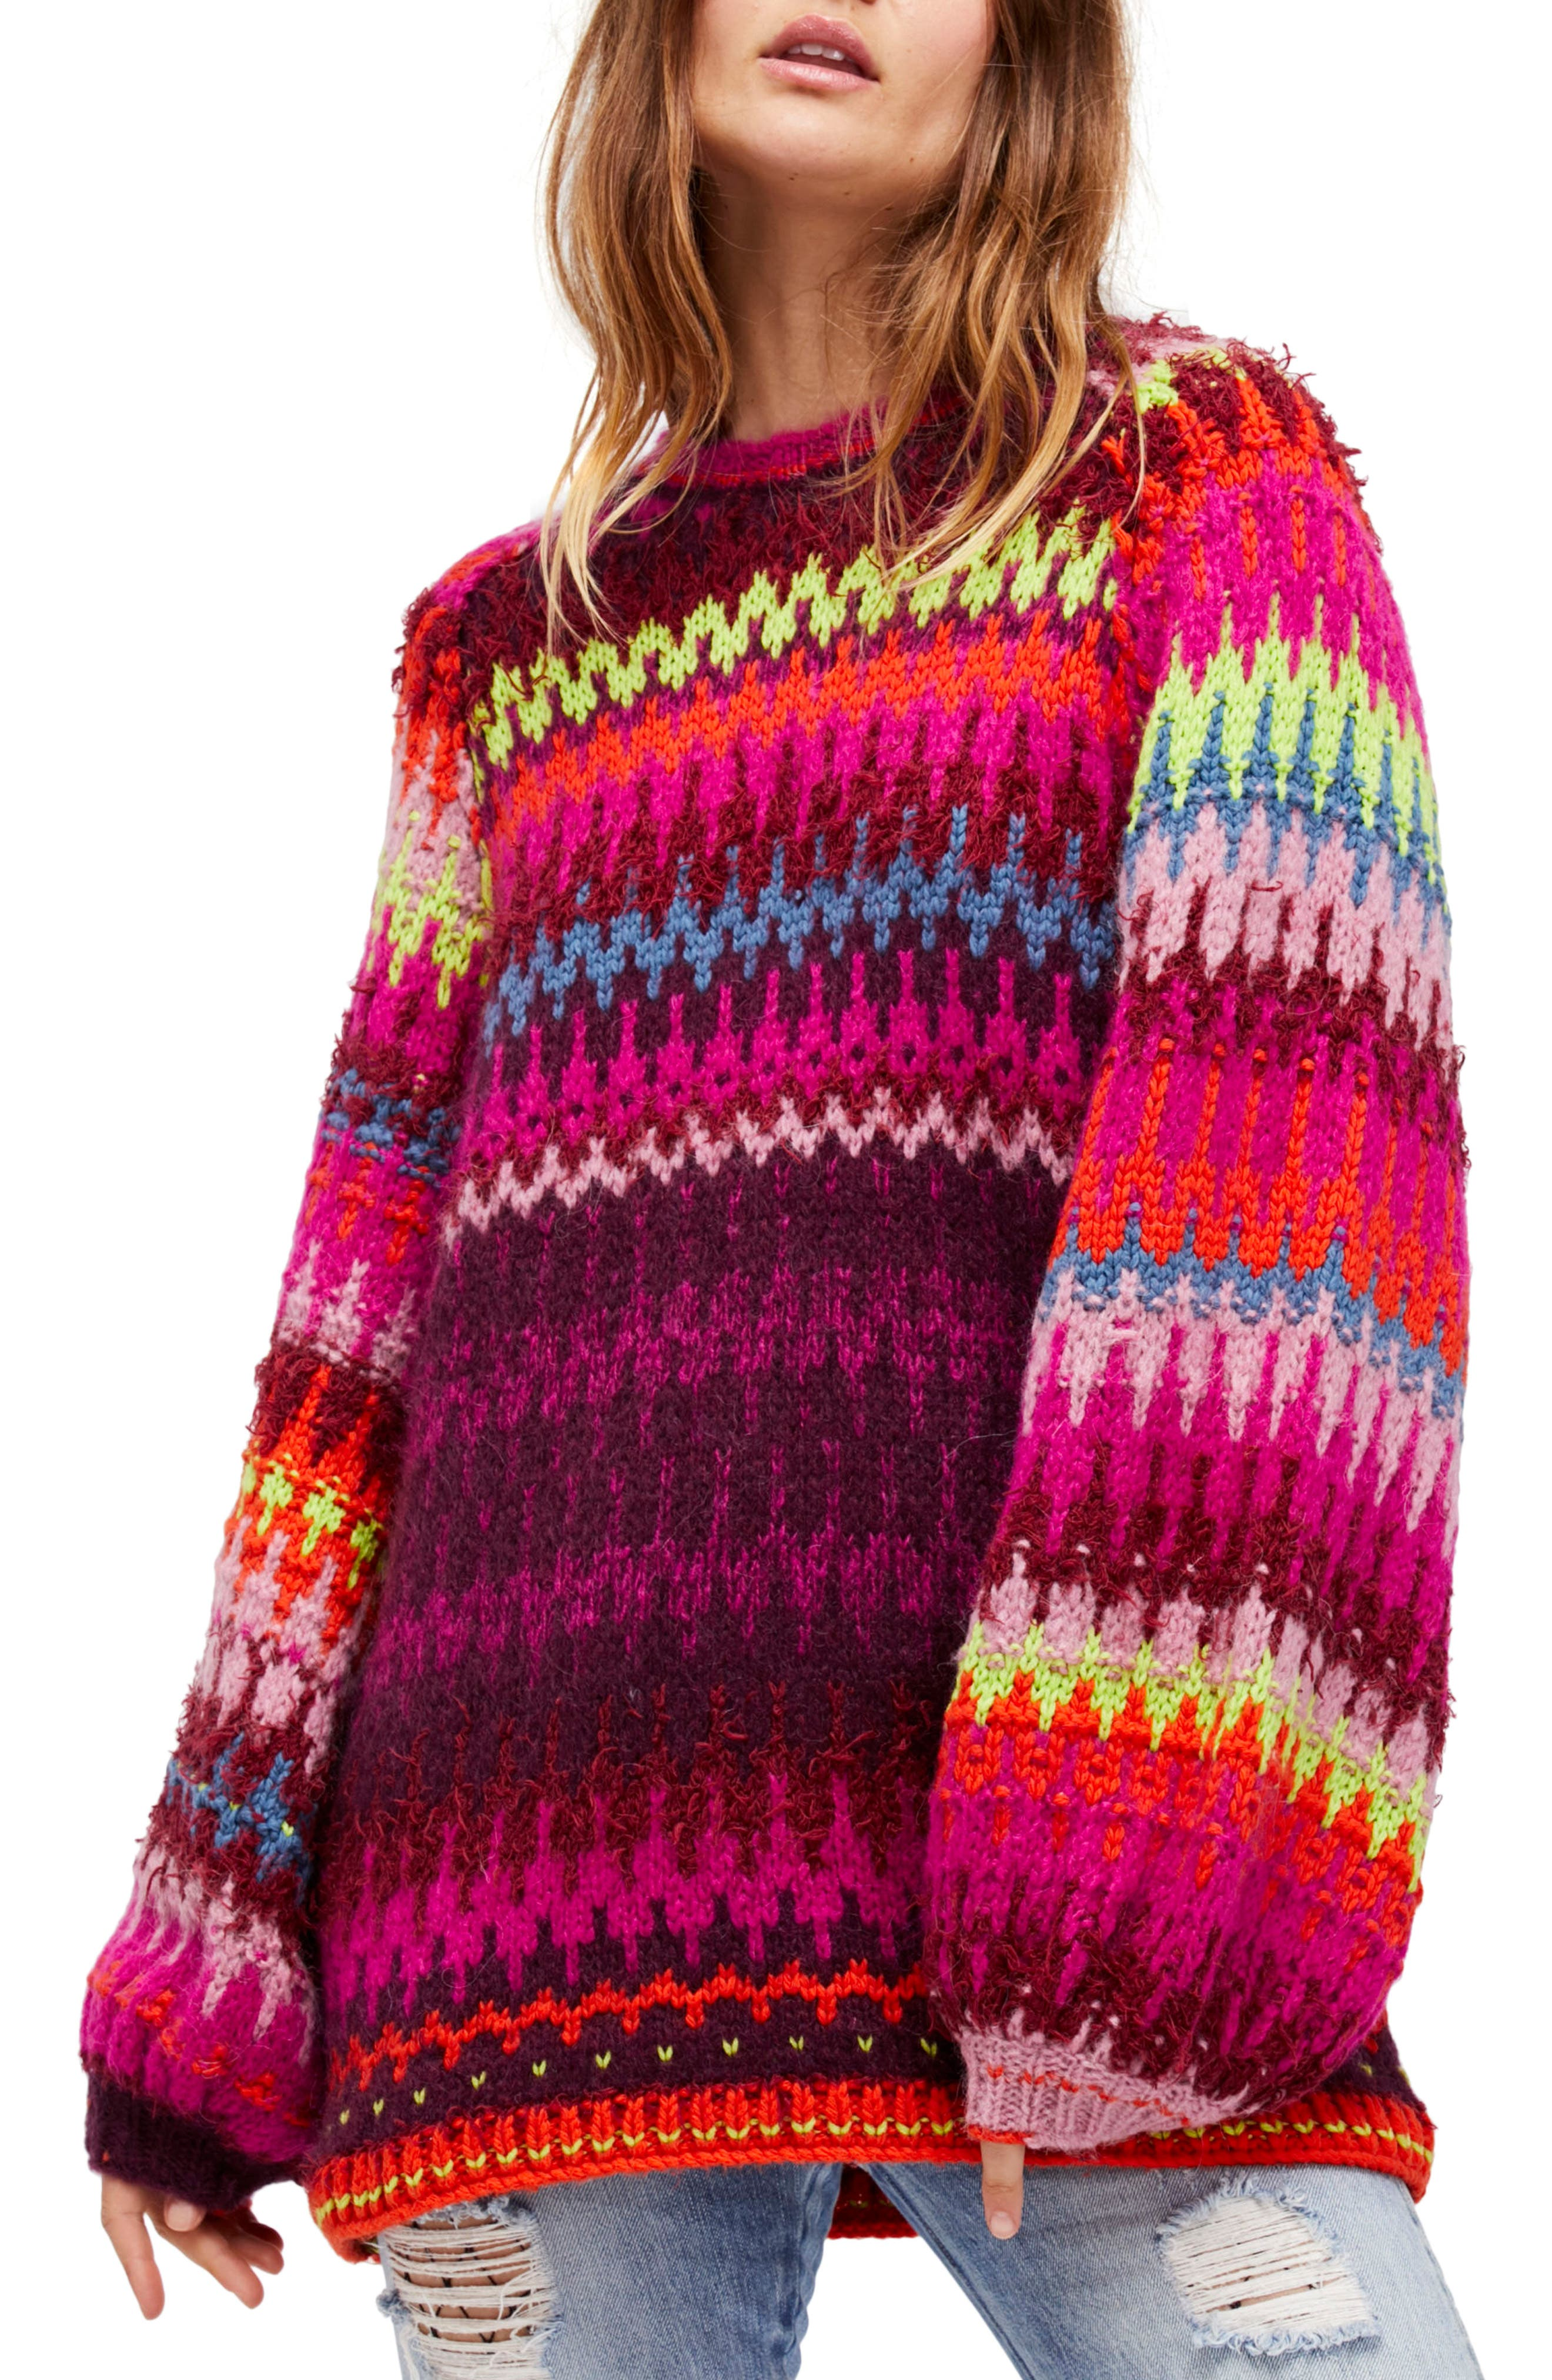 Castles in the Sky Sweater,                             Main thumbnail 1, color,                             Multi